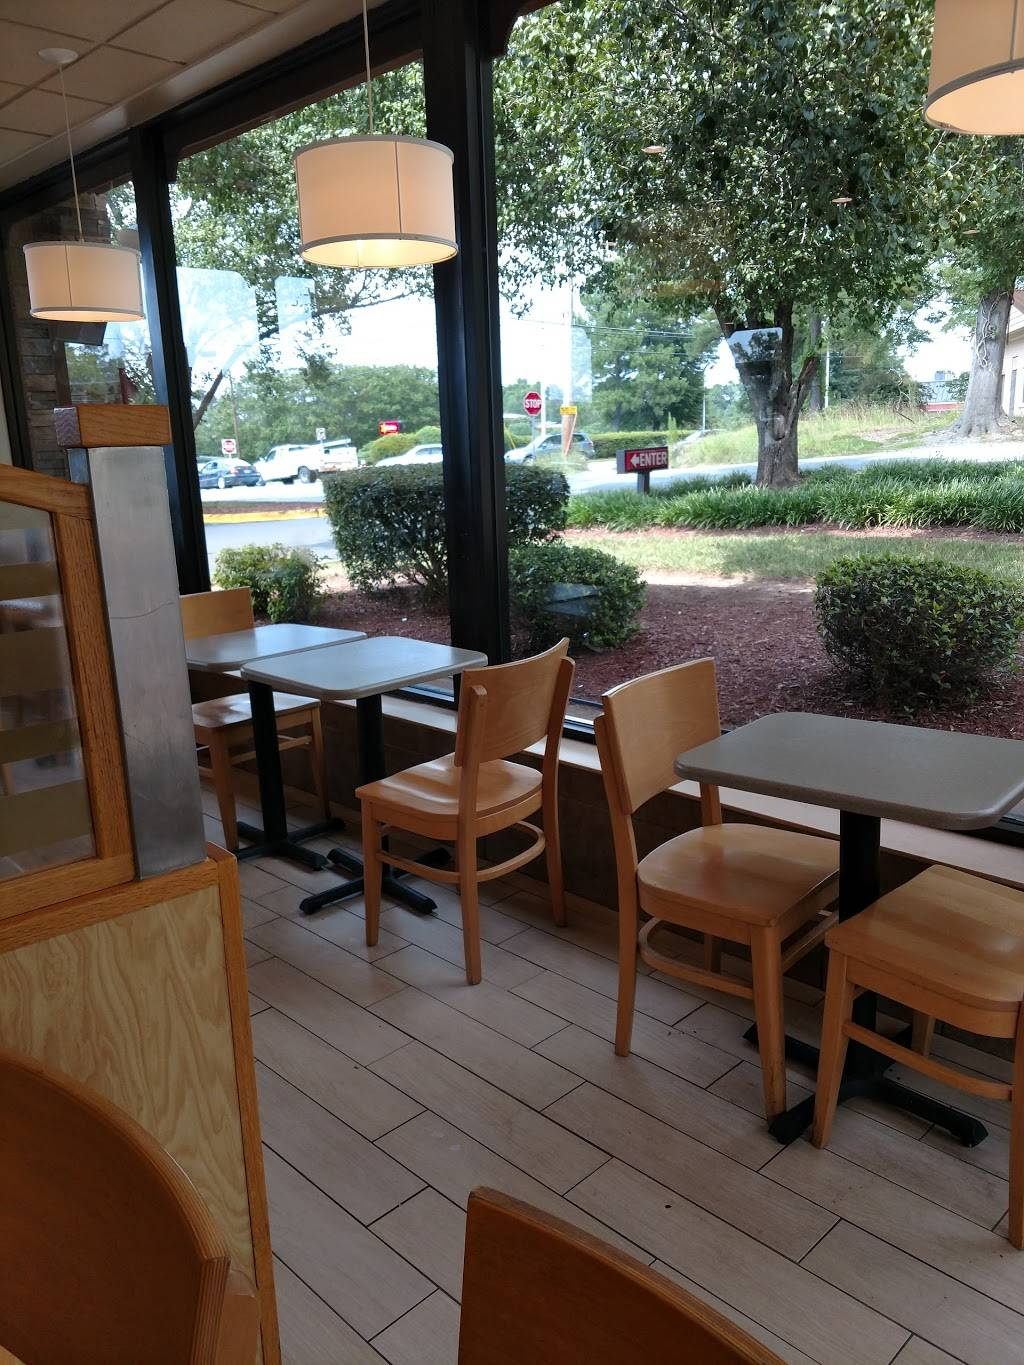 Wendys - restaurant  | Photo 4 of 8 | Address: 100 Scarlet Dr, Chapel Hill, NC 27517, USA | Phone: (919) 967-8624